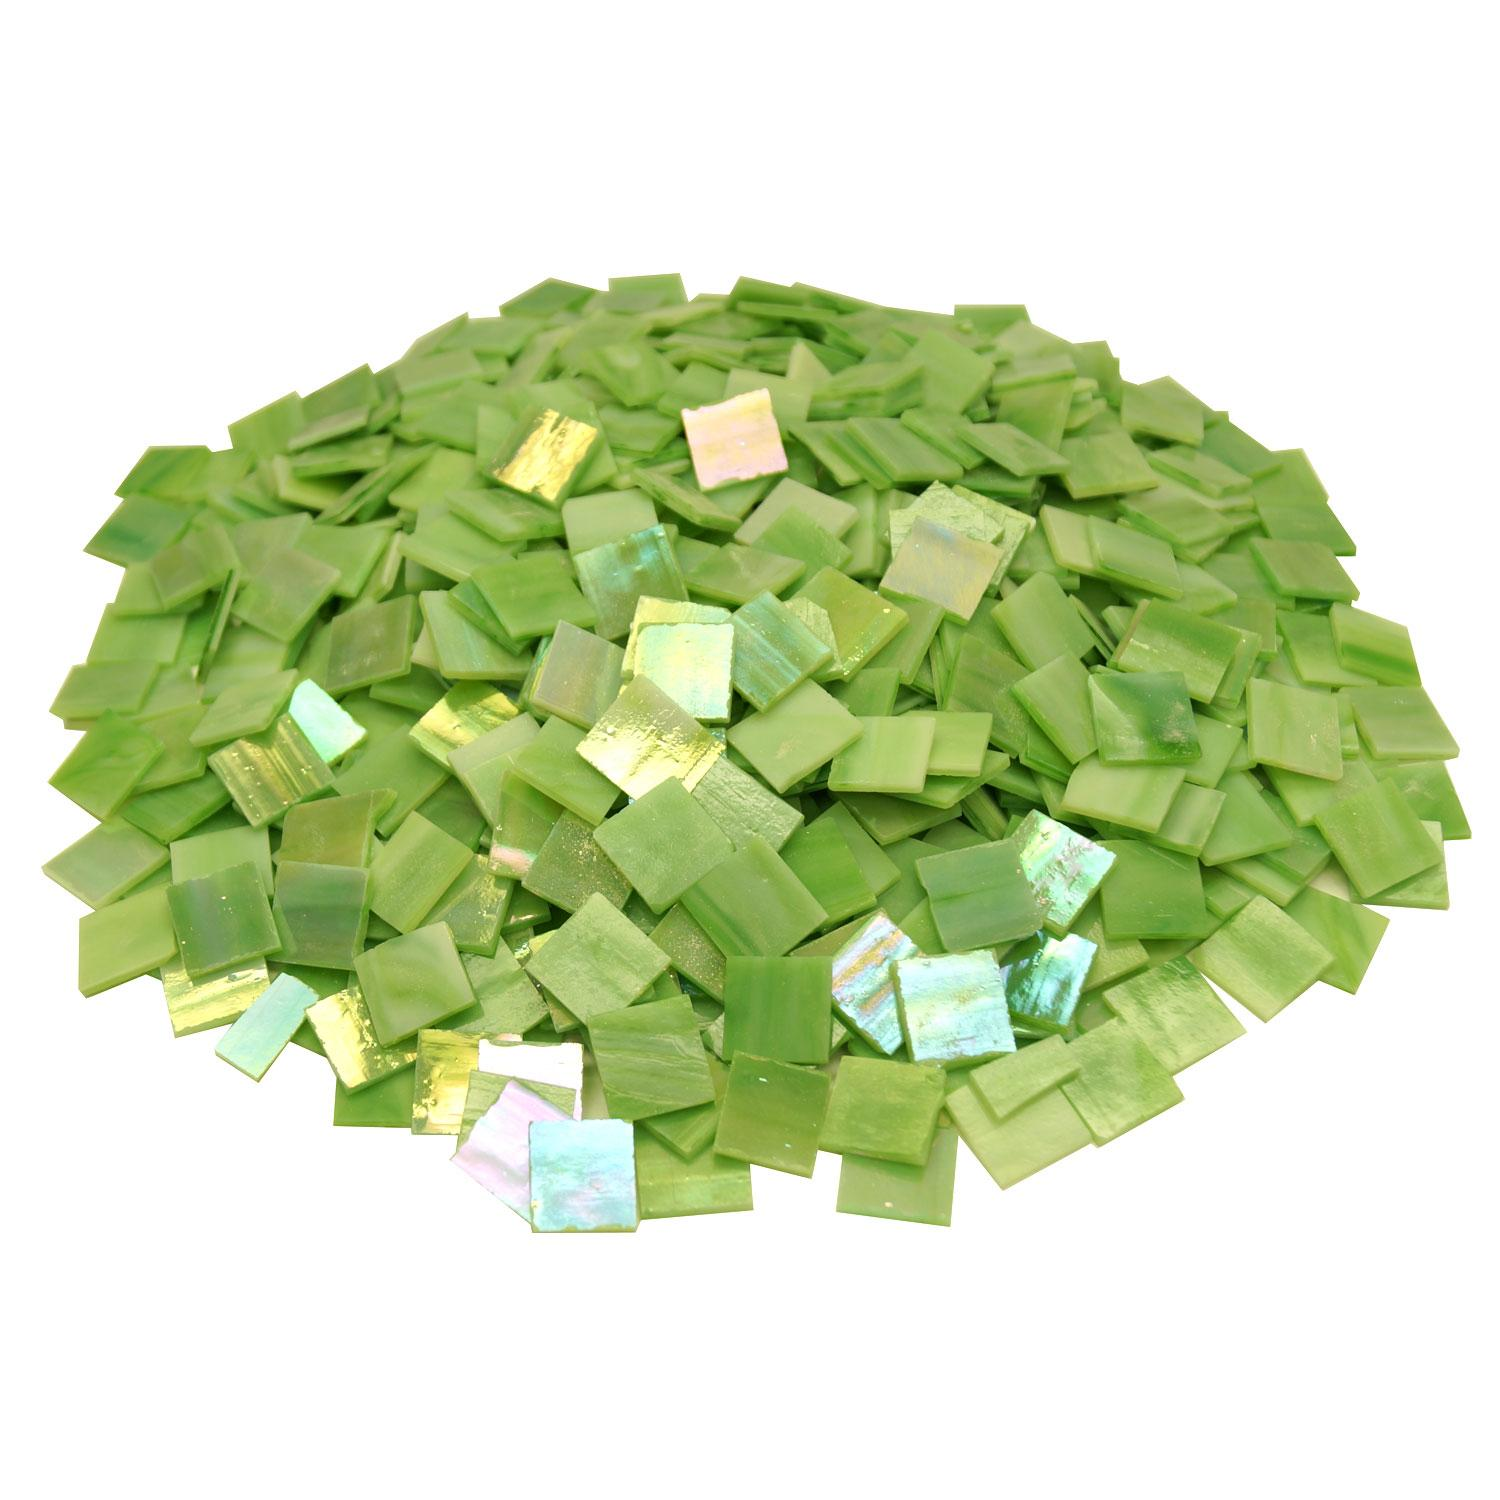 3/4 Light Green Opaque Iridized Stained Glass Chips - 700 Pieces